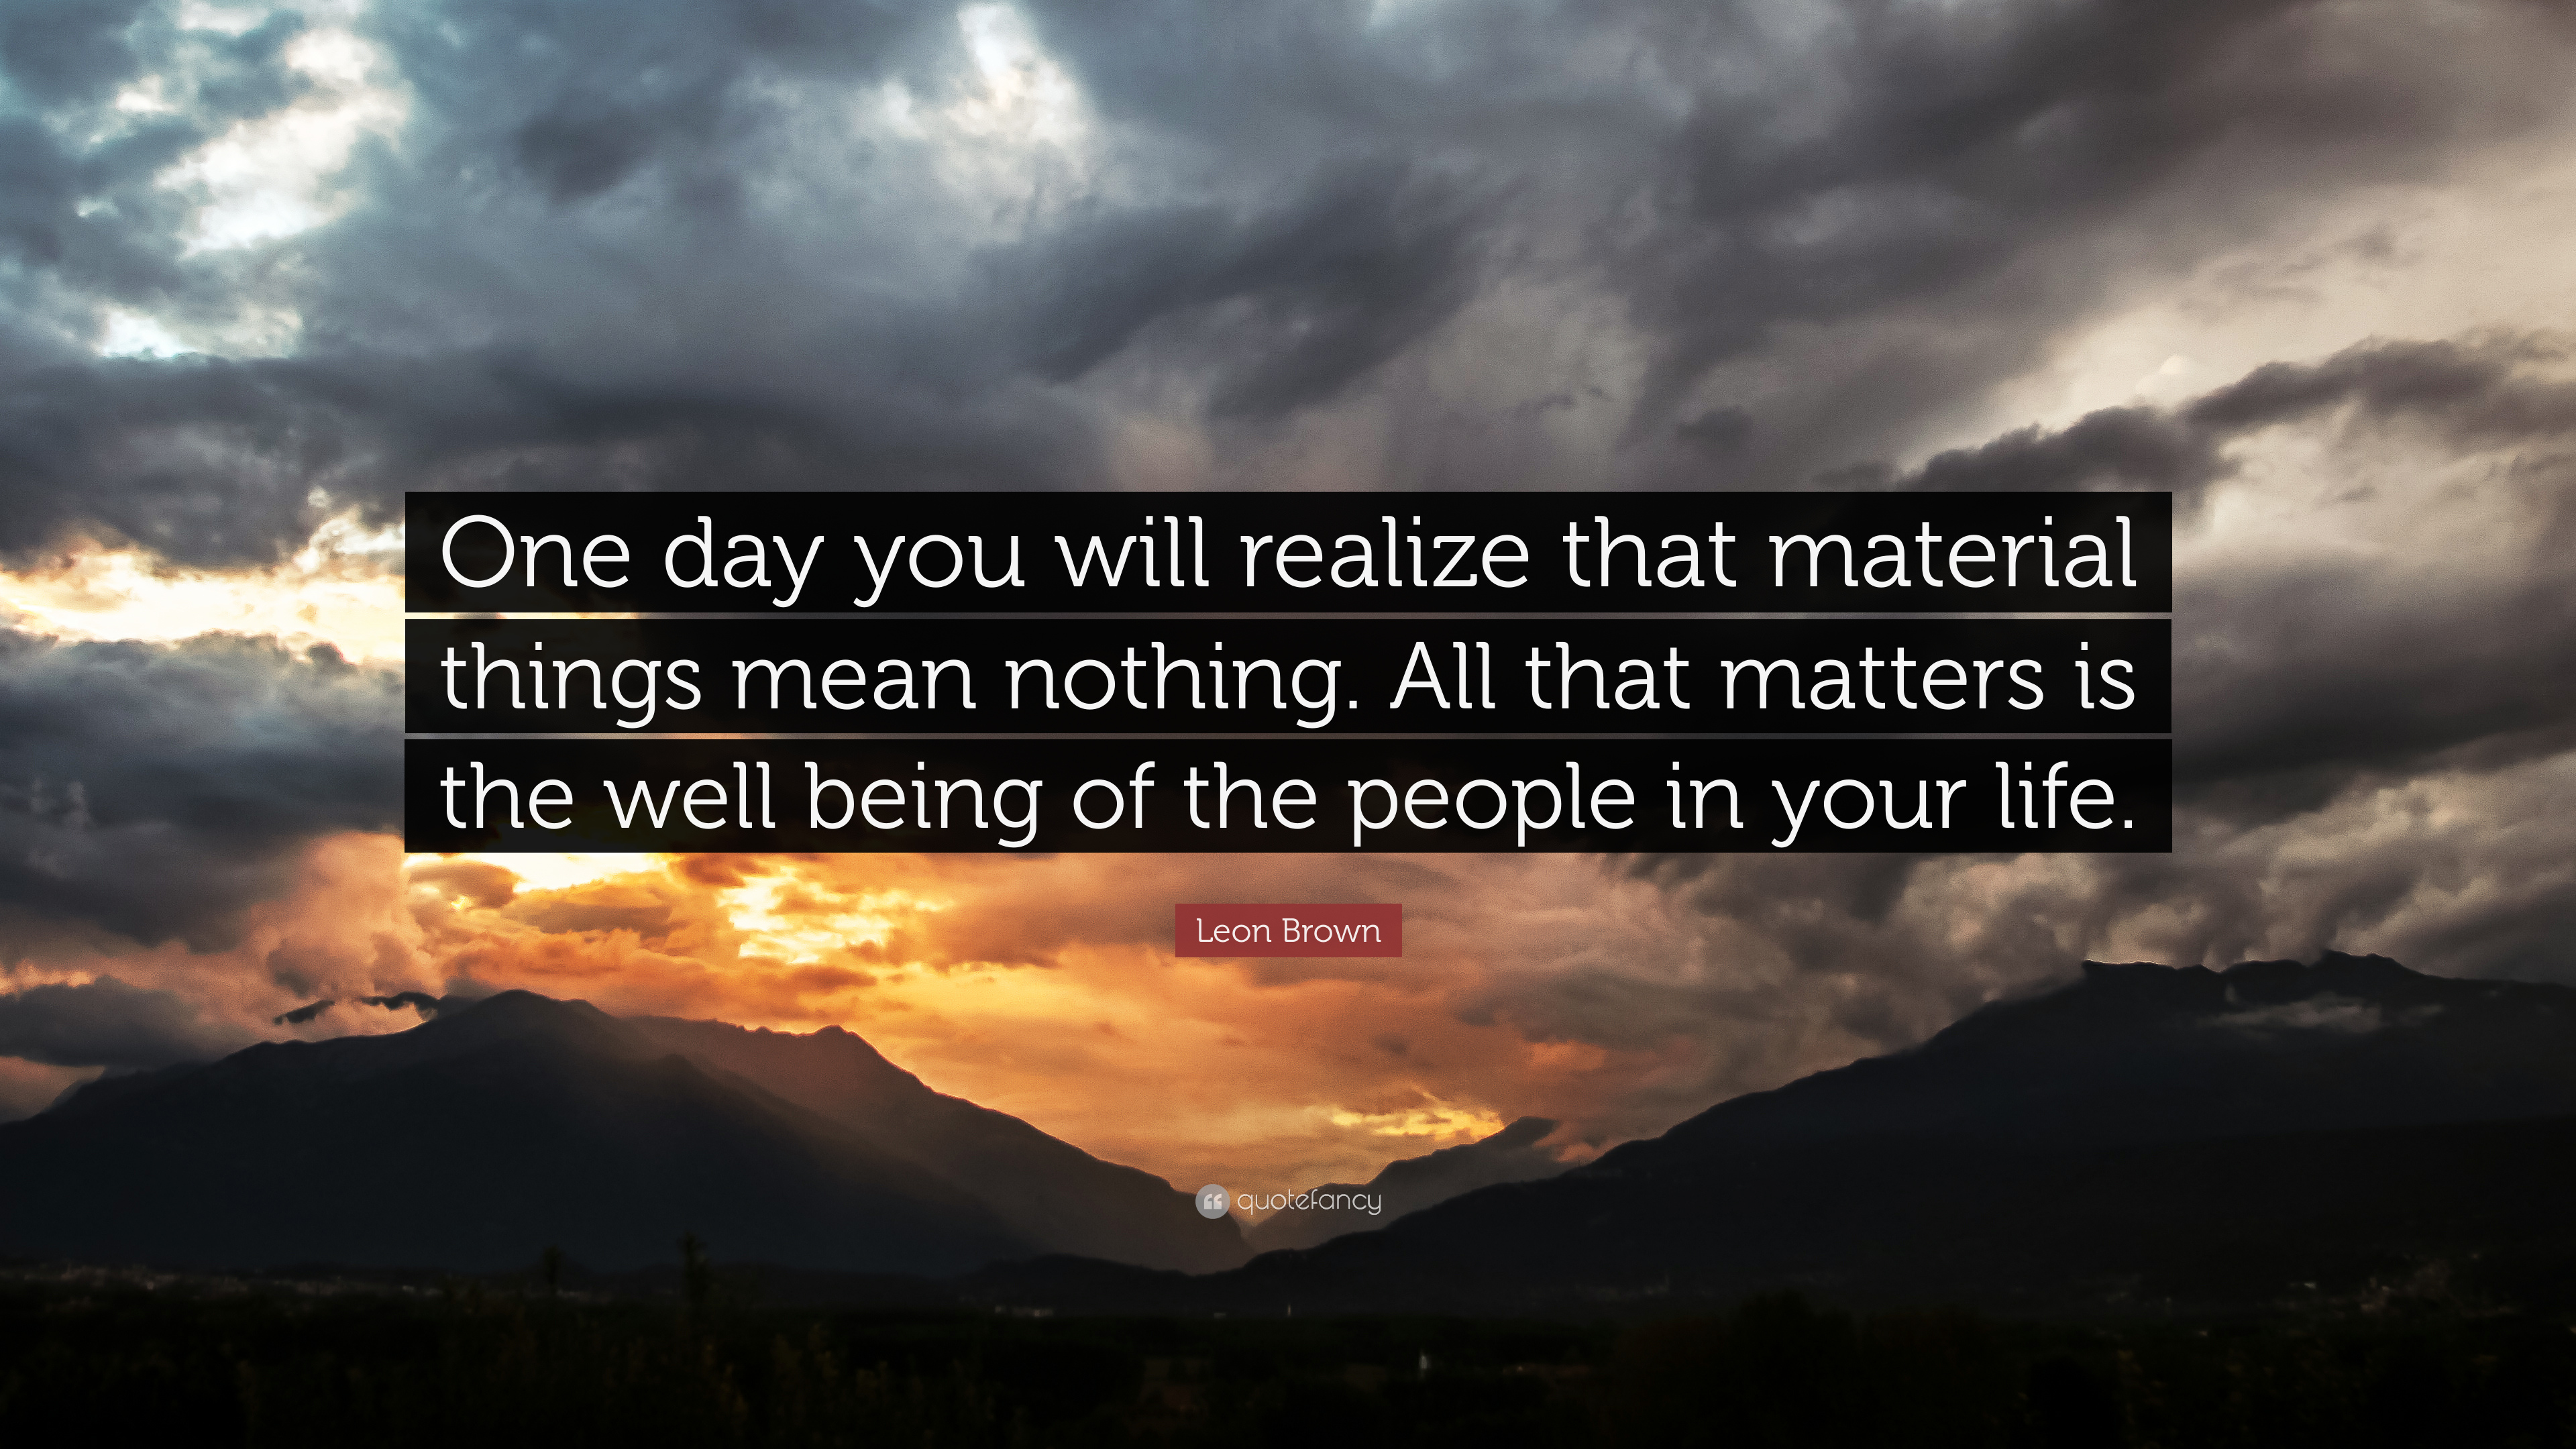 Leon Brown Quote: One day you will realize that material